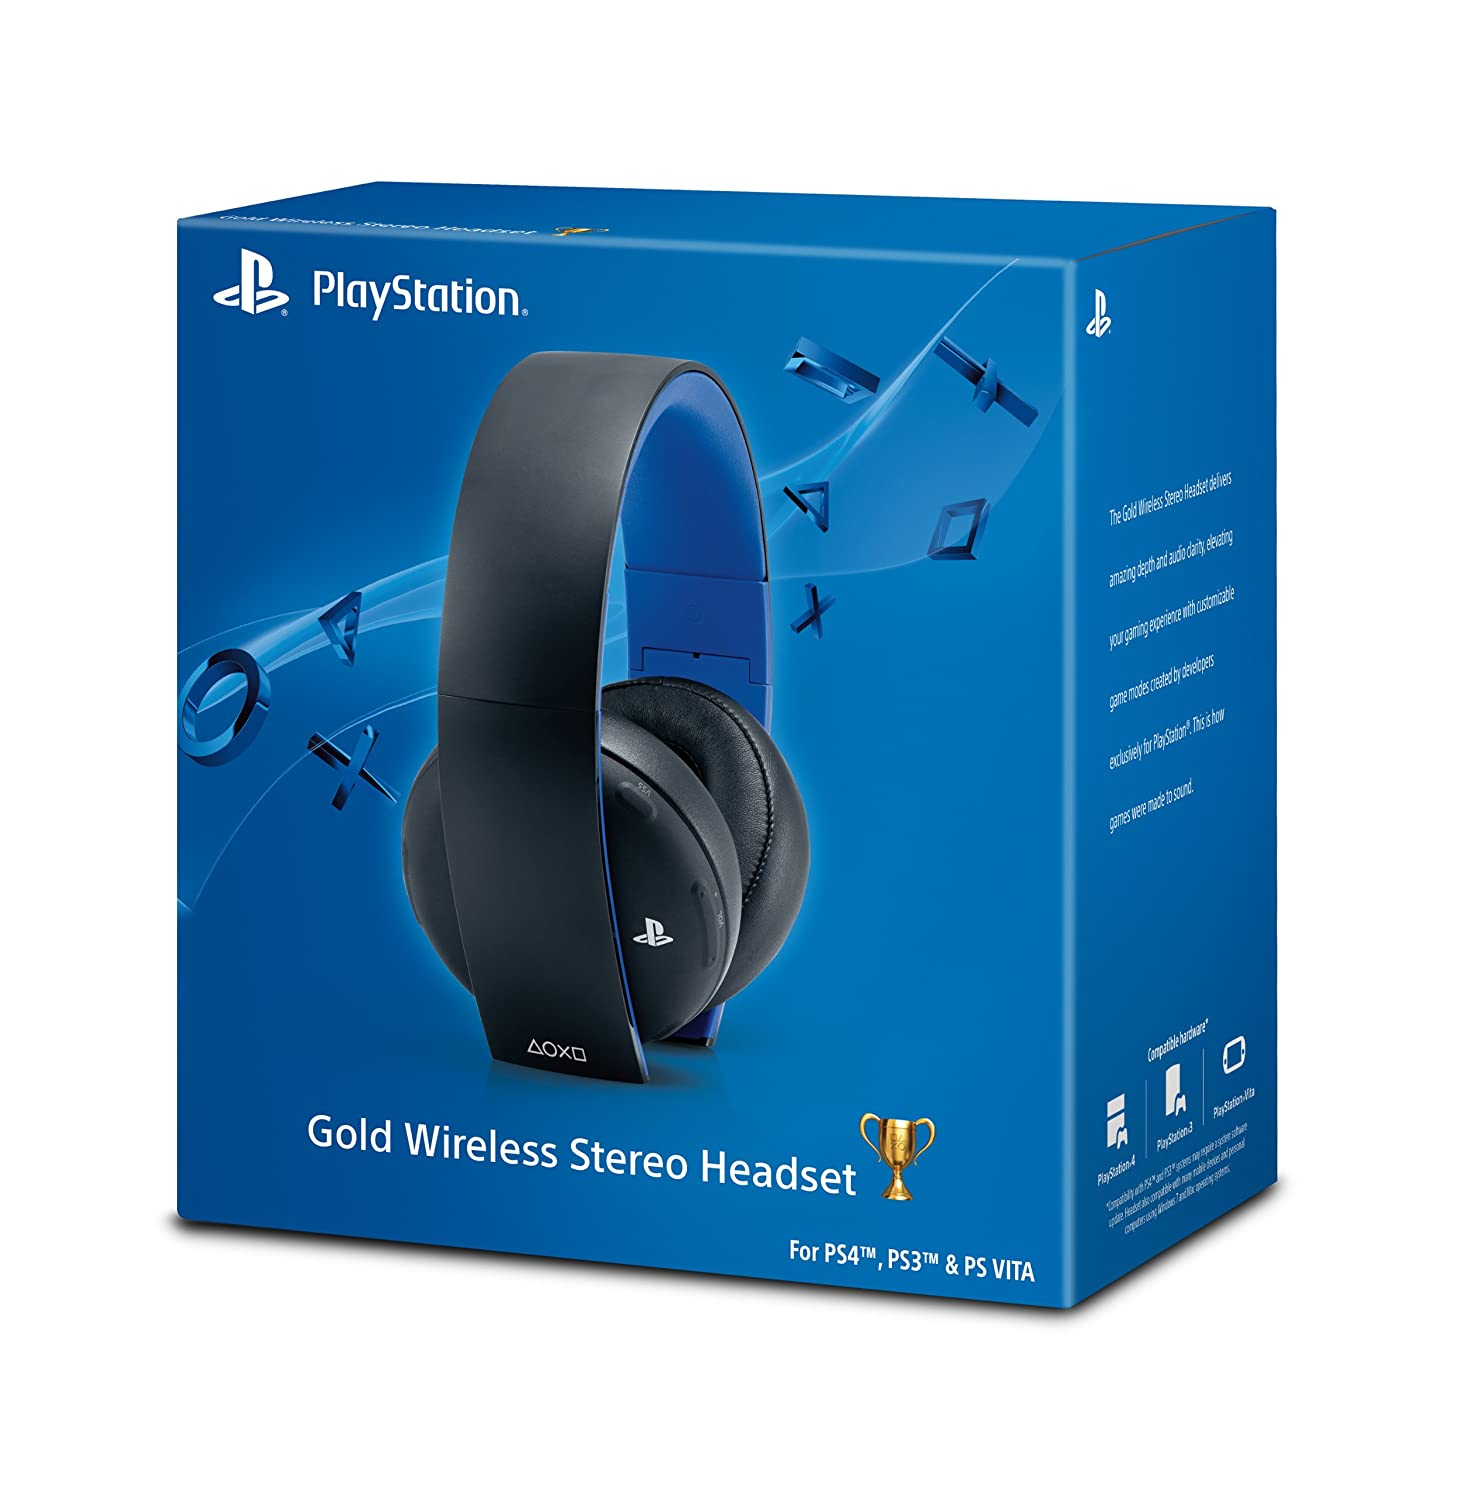 PlayStation Silver Wired Stereo Headset vs. Gold Wireless Stereo ...